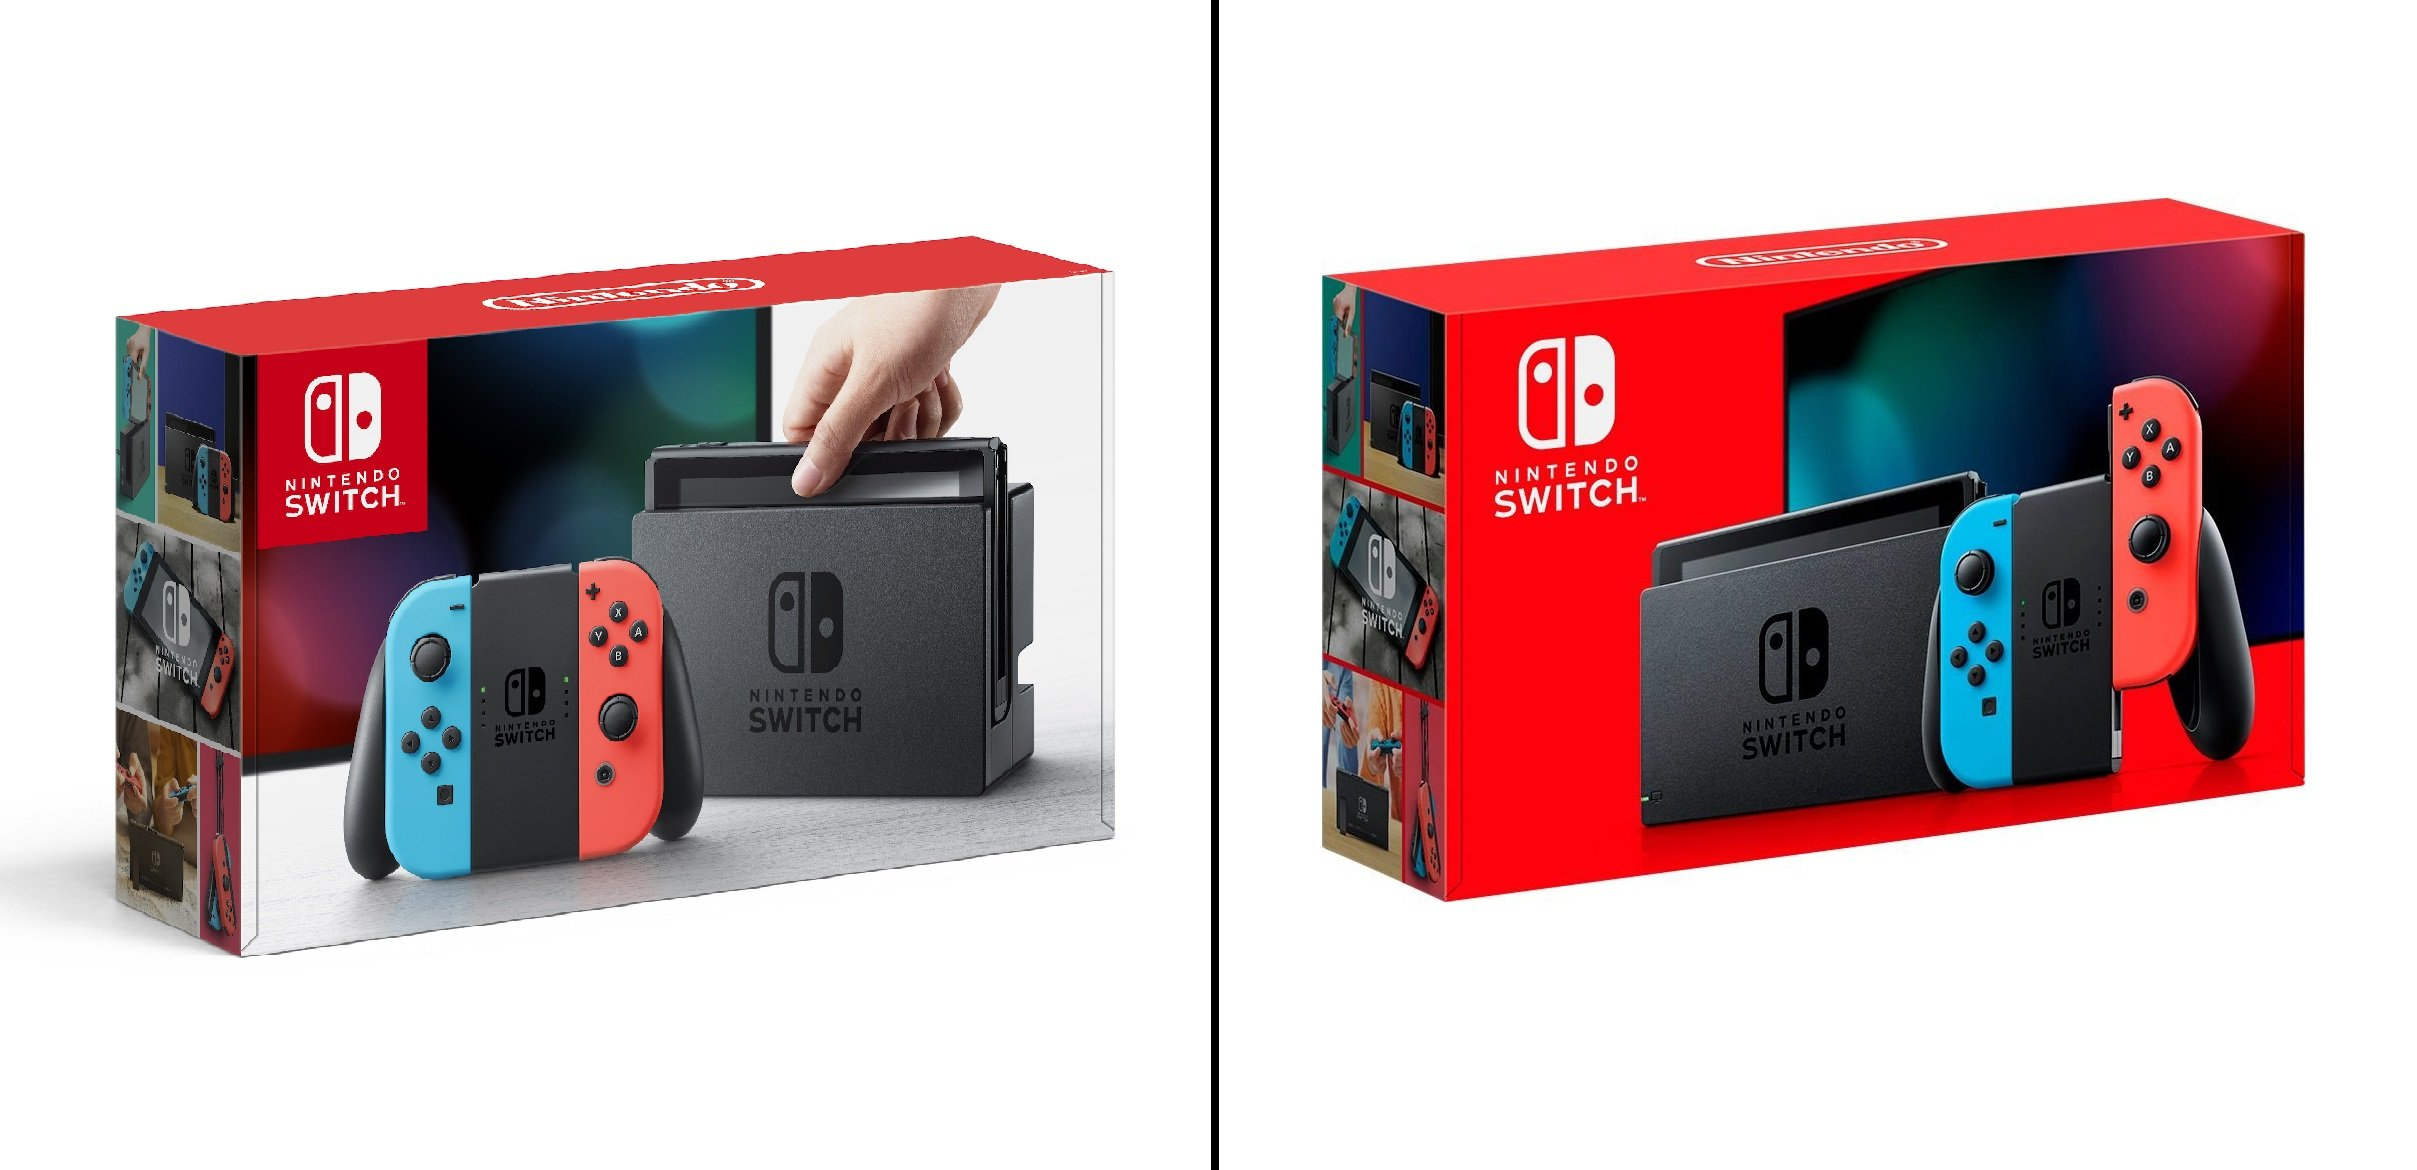 How to buy extended battery Nintendo Switch